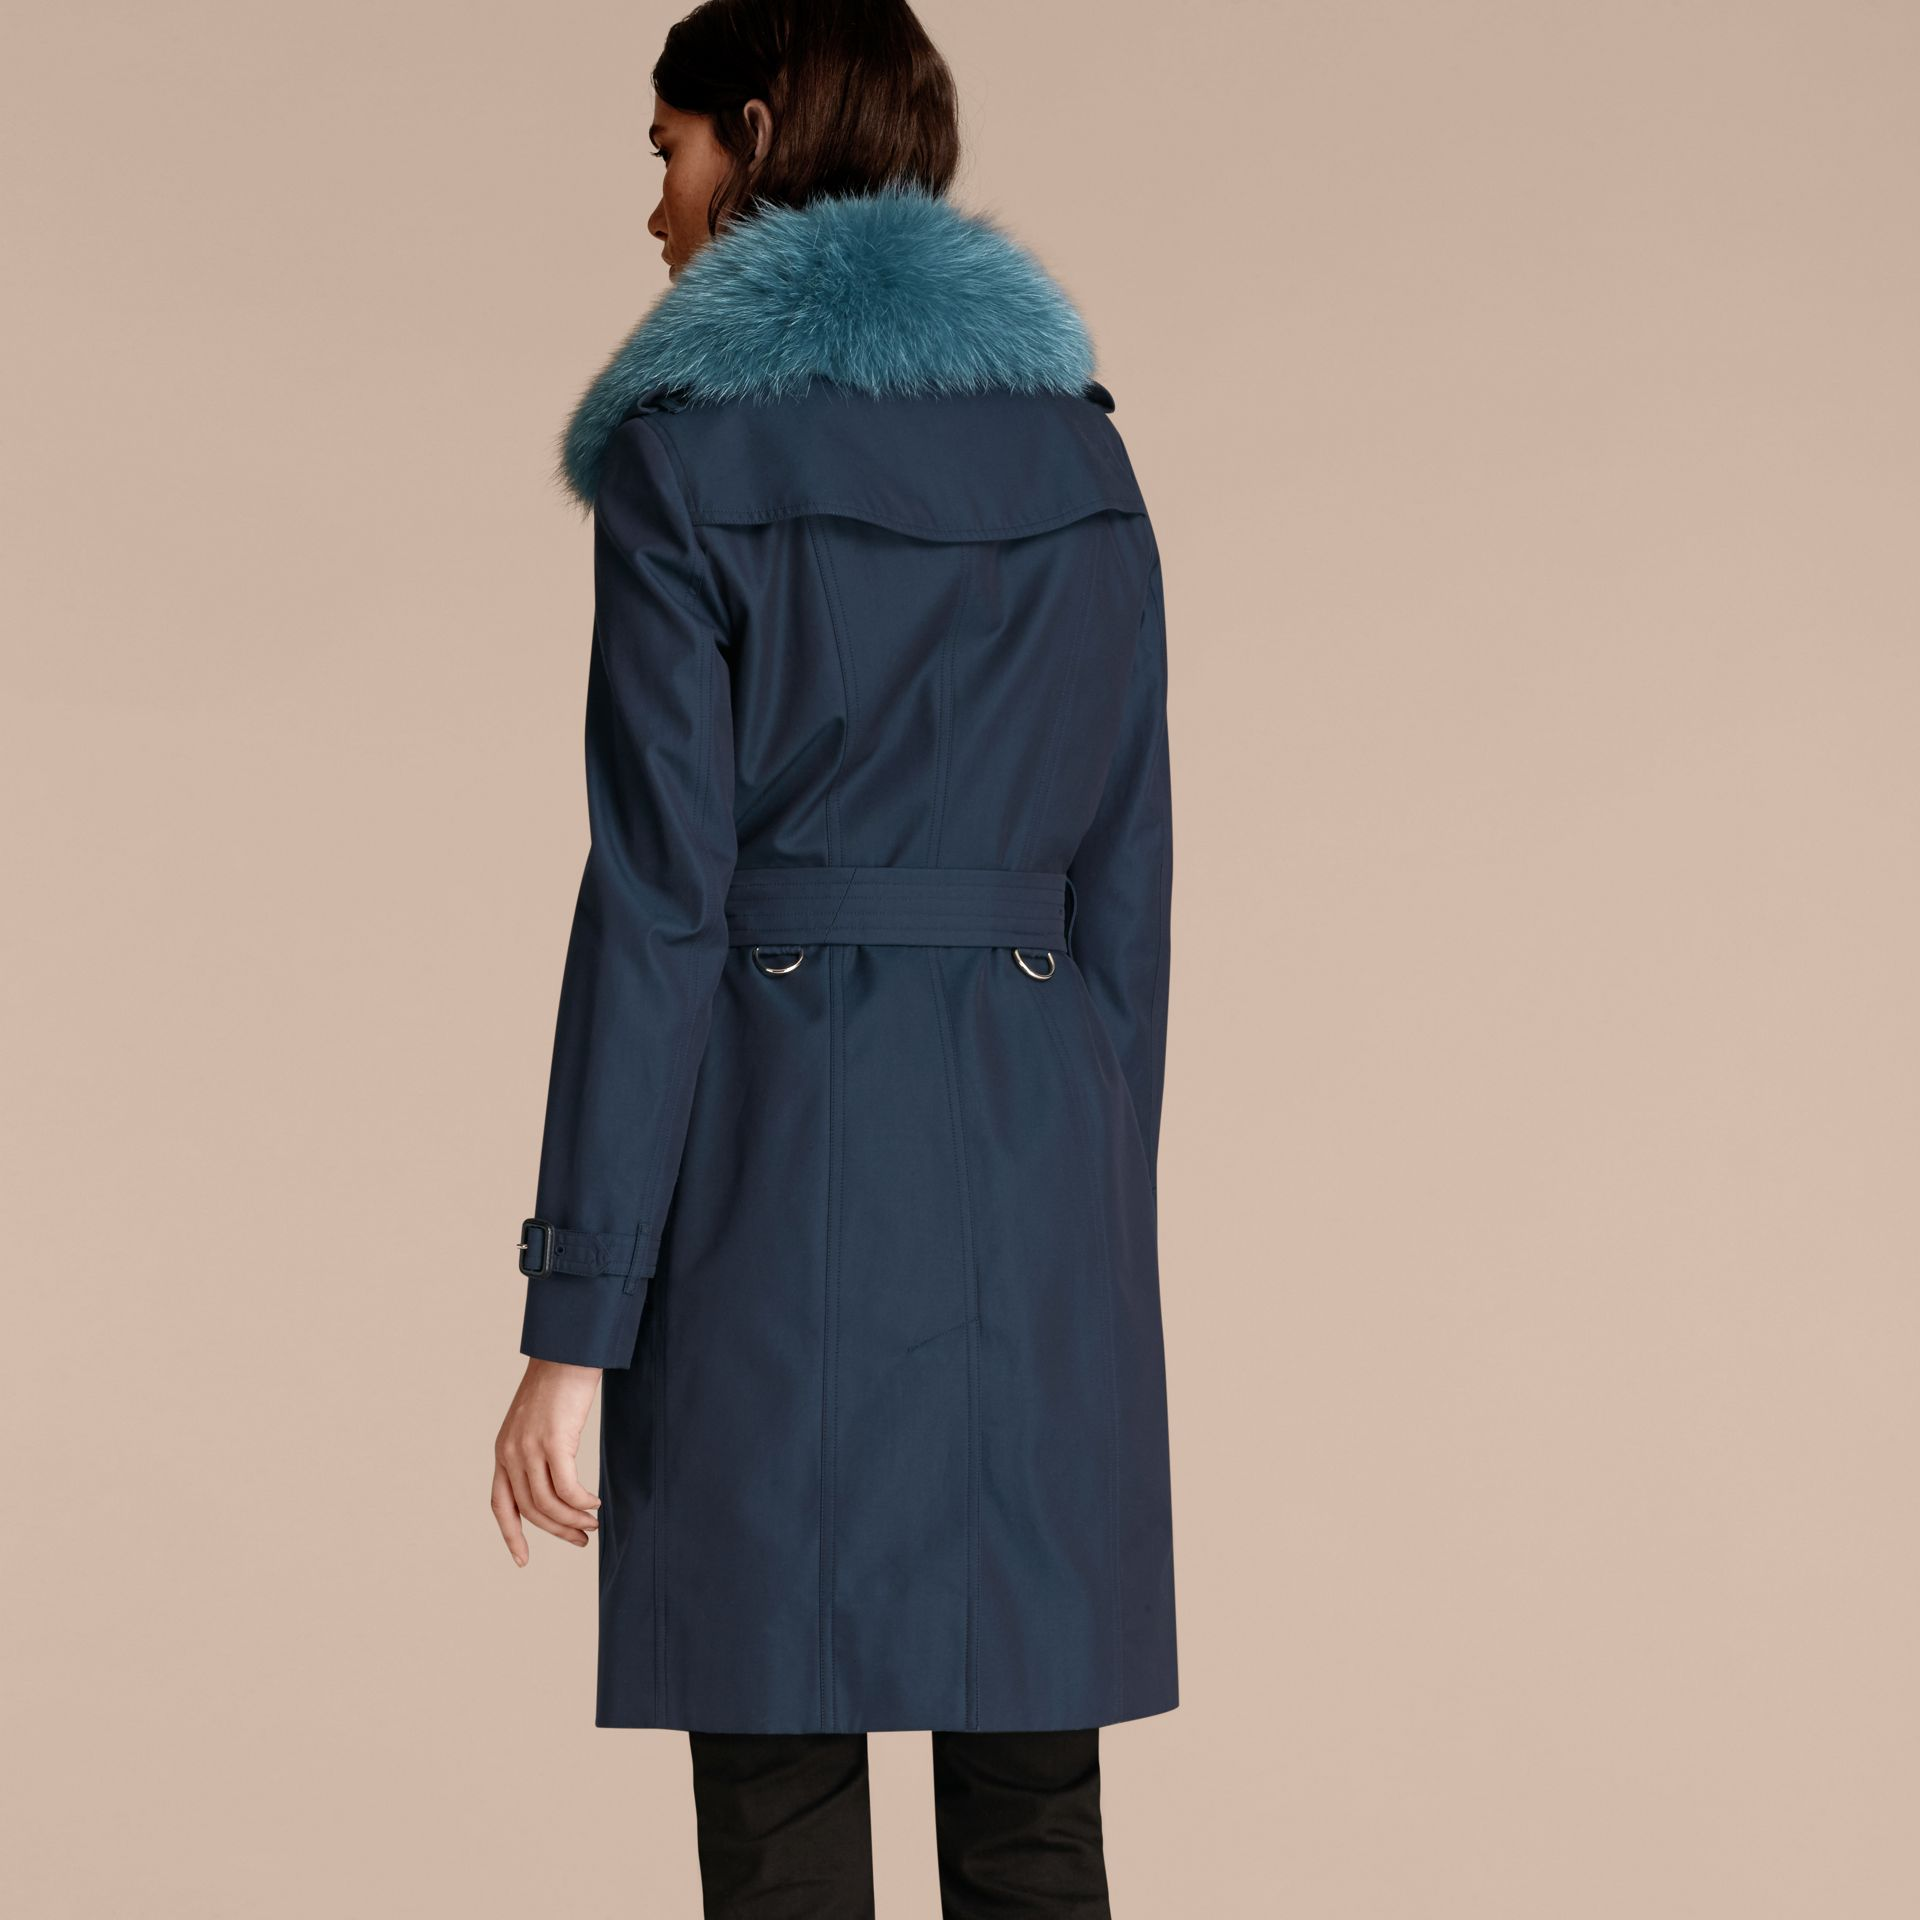 Teal blue Cotton Gabardine Trench Coat with Detachable Fur Collar and Warmer Teal Blue - gallery image 3